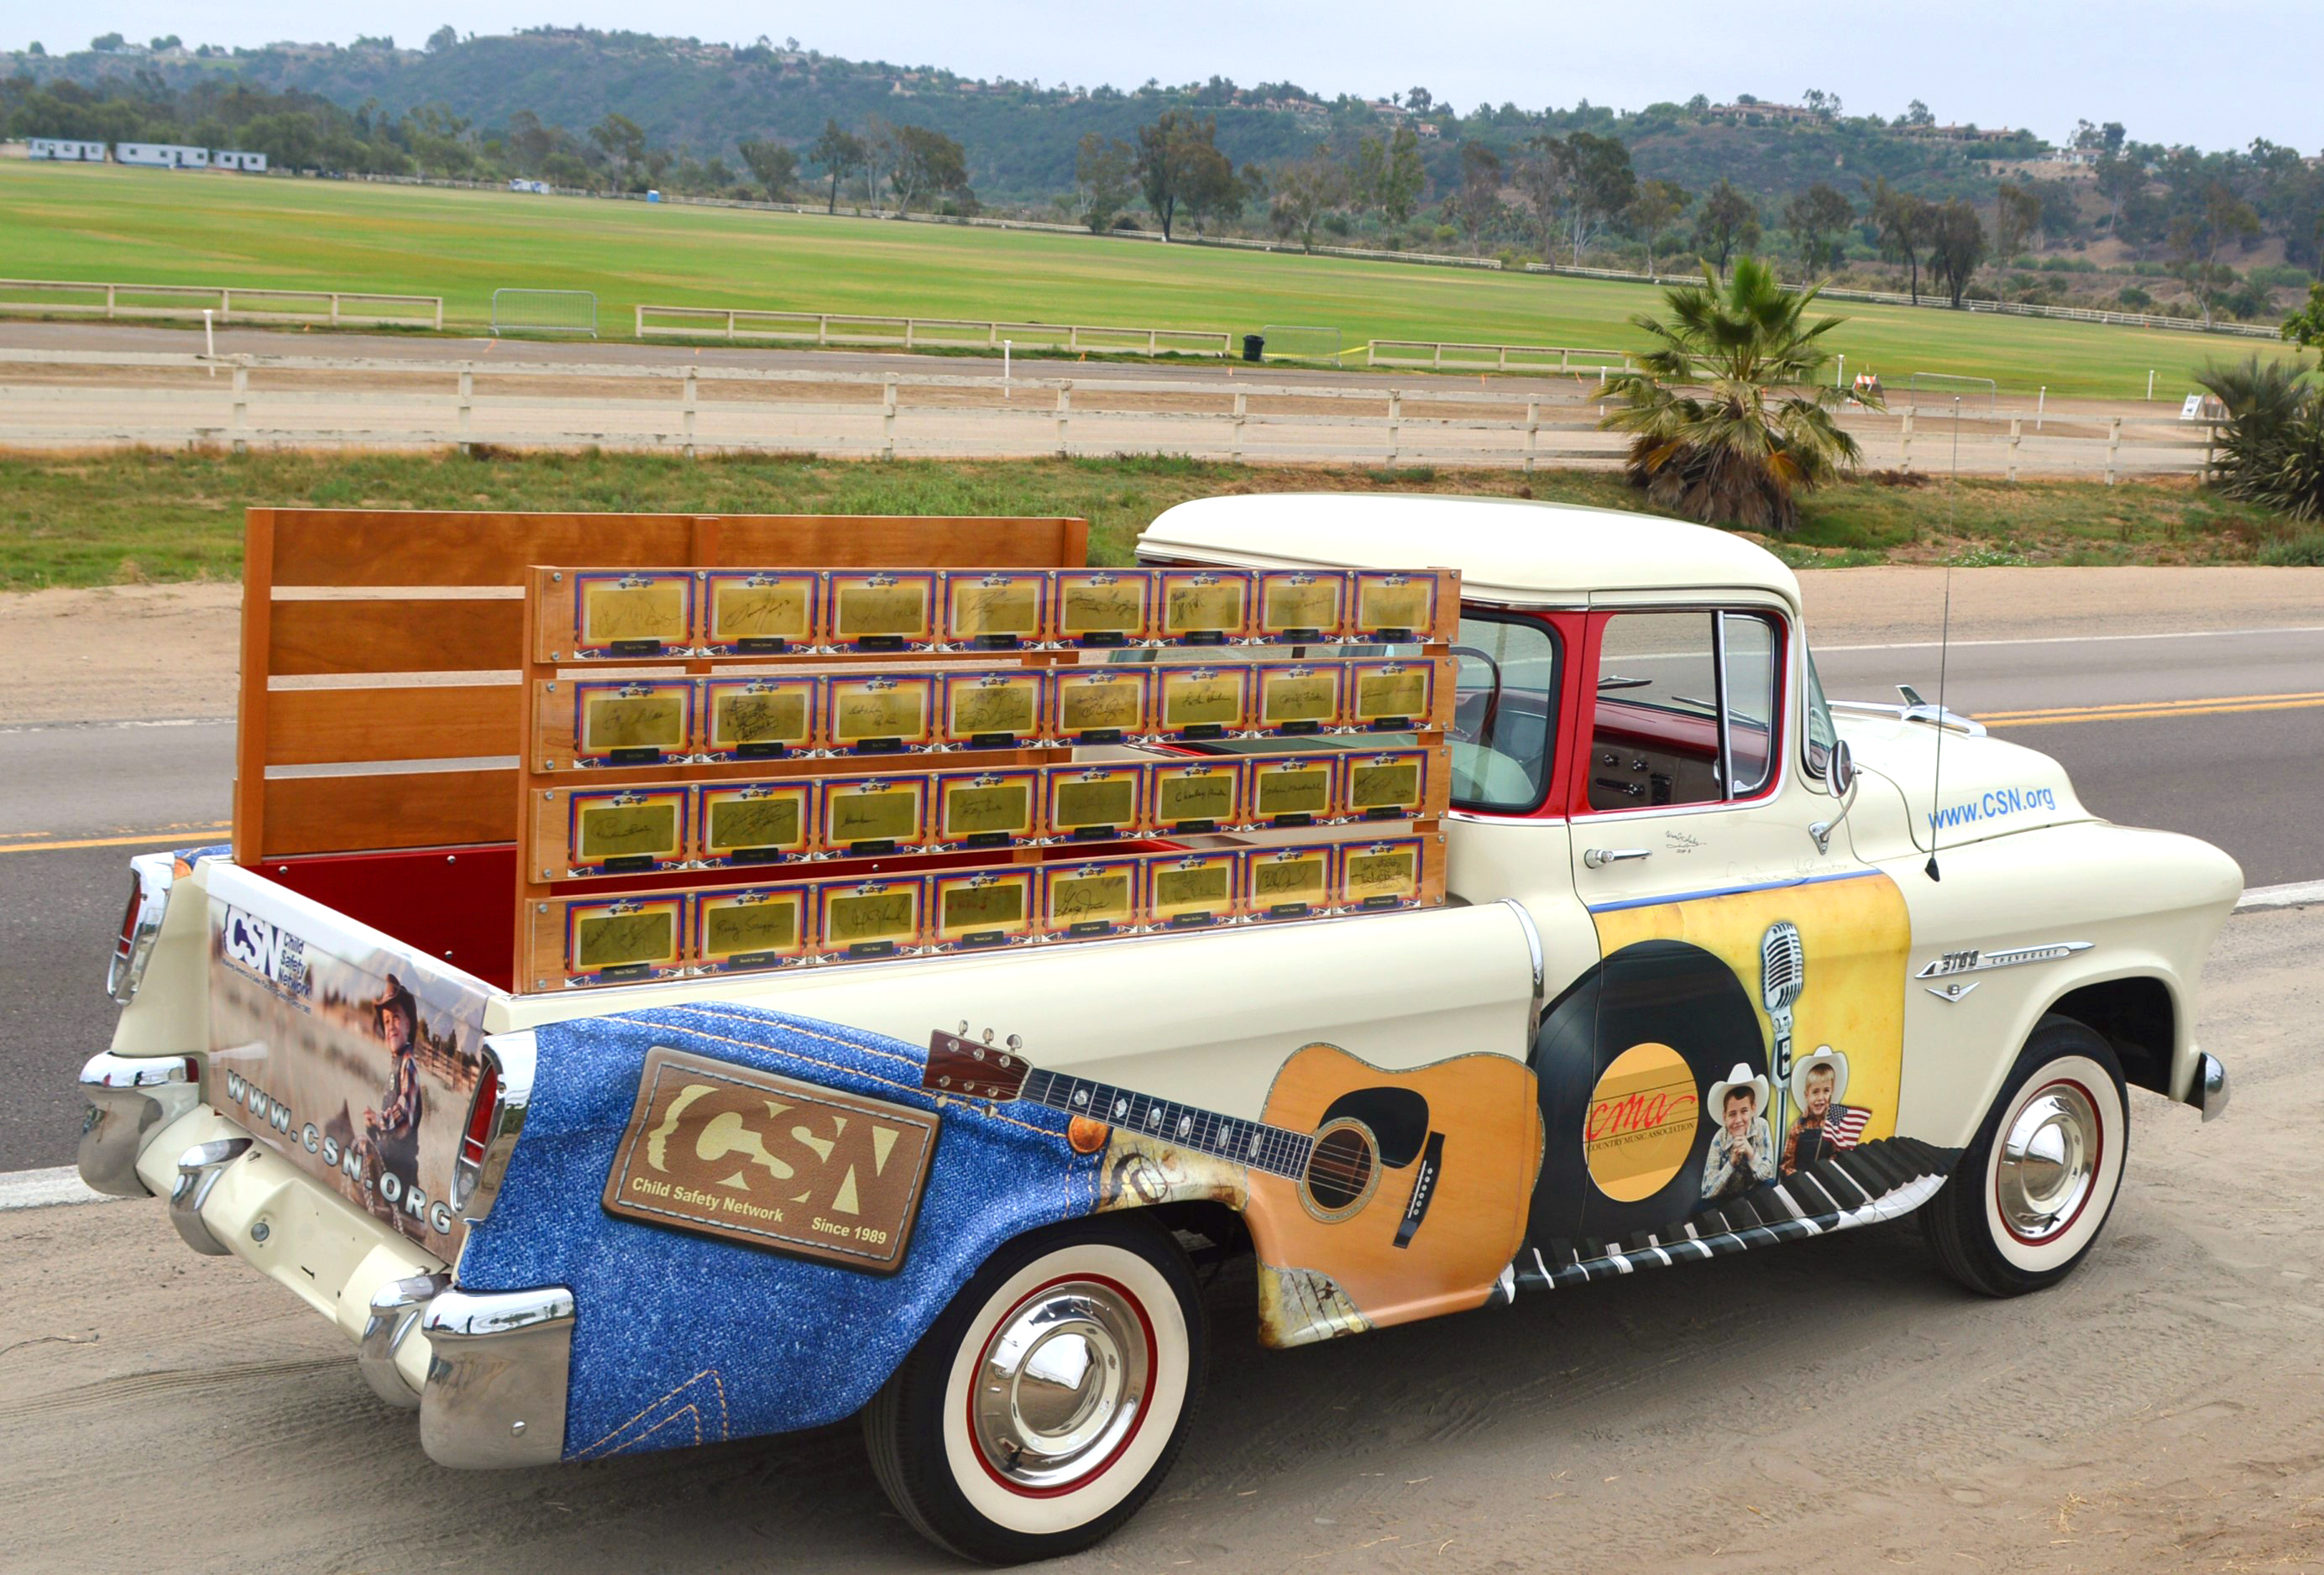 Country Music Truck Arrives at Mecum Auction in Dallas | Business Wire